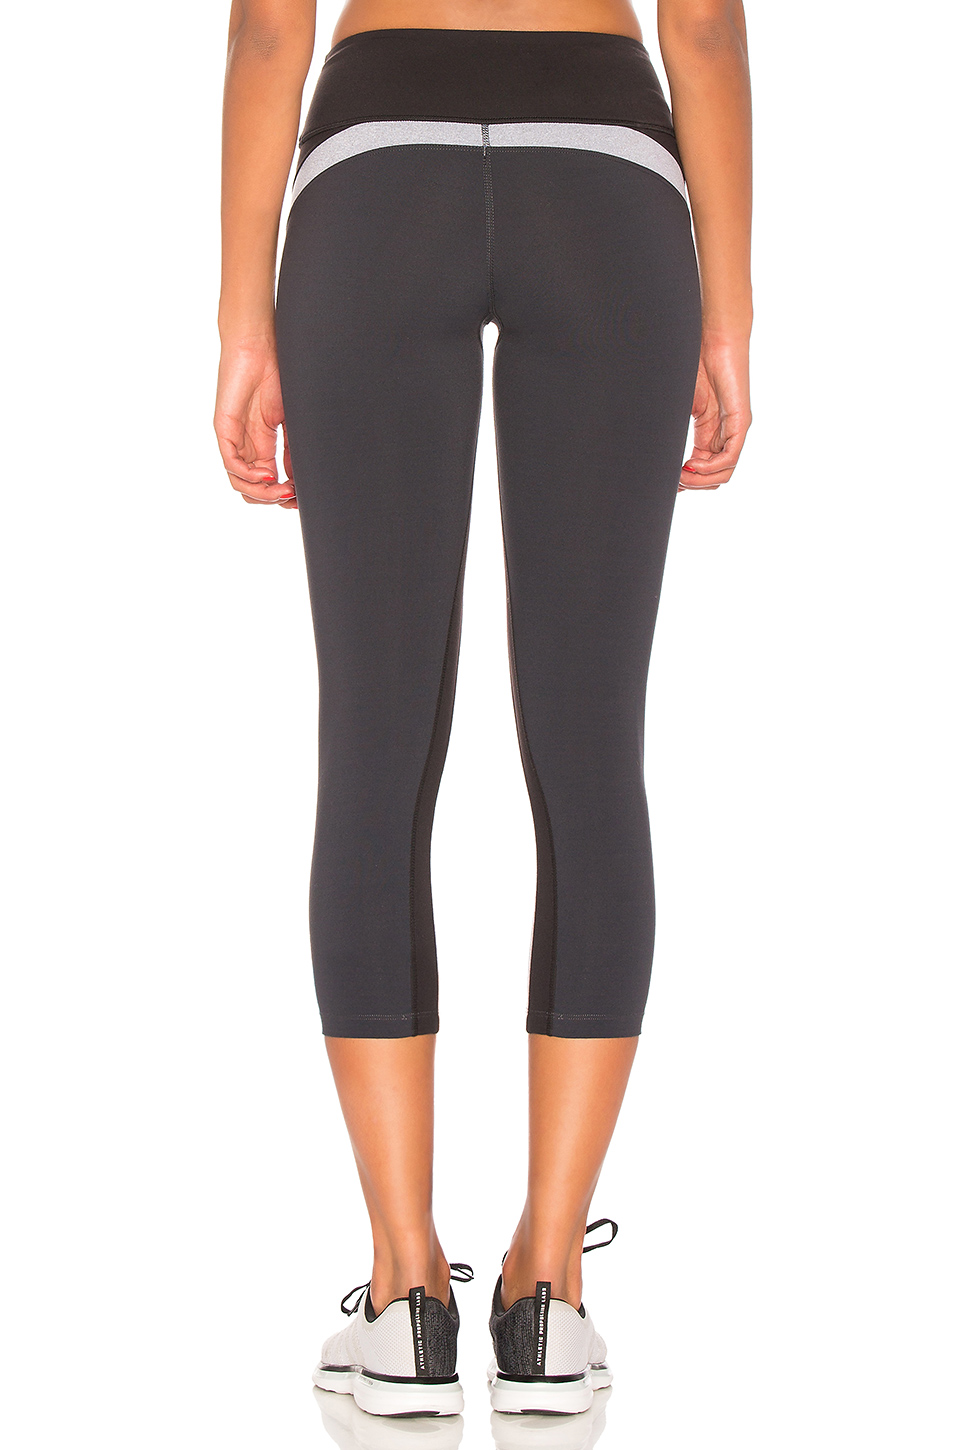 Splits59 Fuel Capri in Black, Light Heather Grey & Midnight